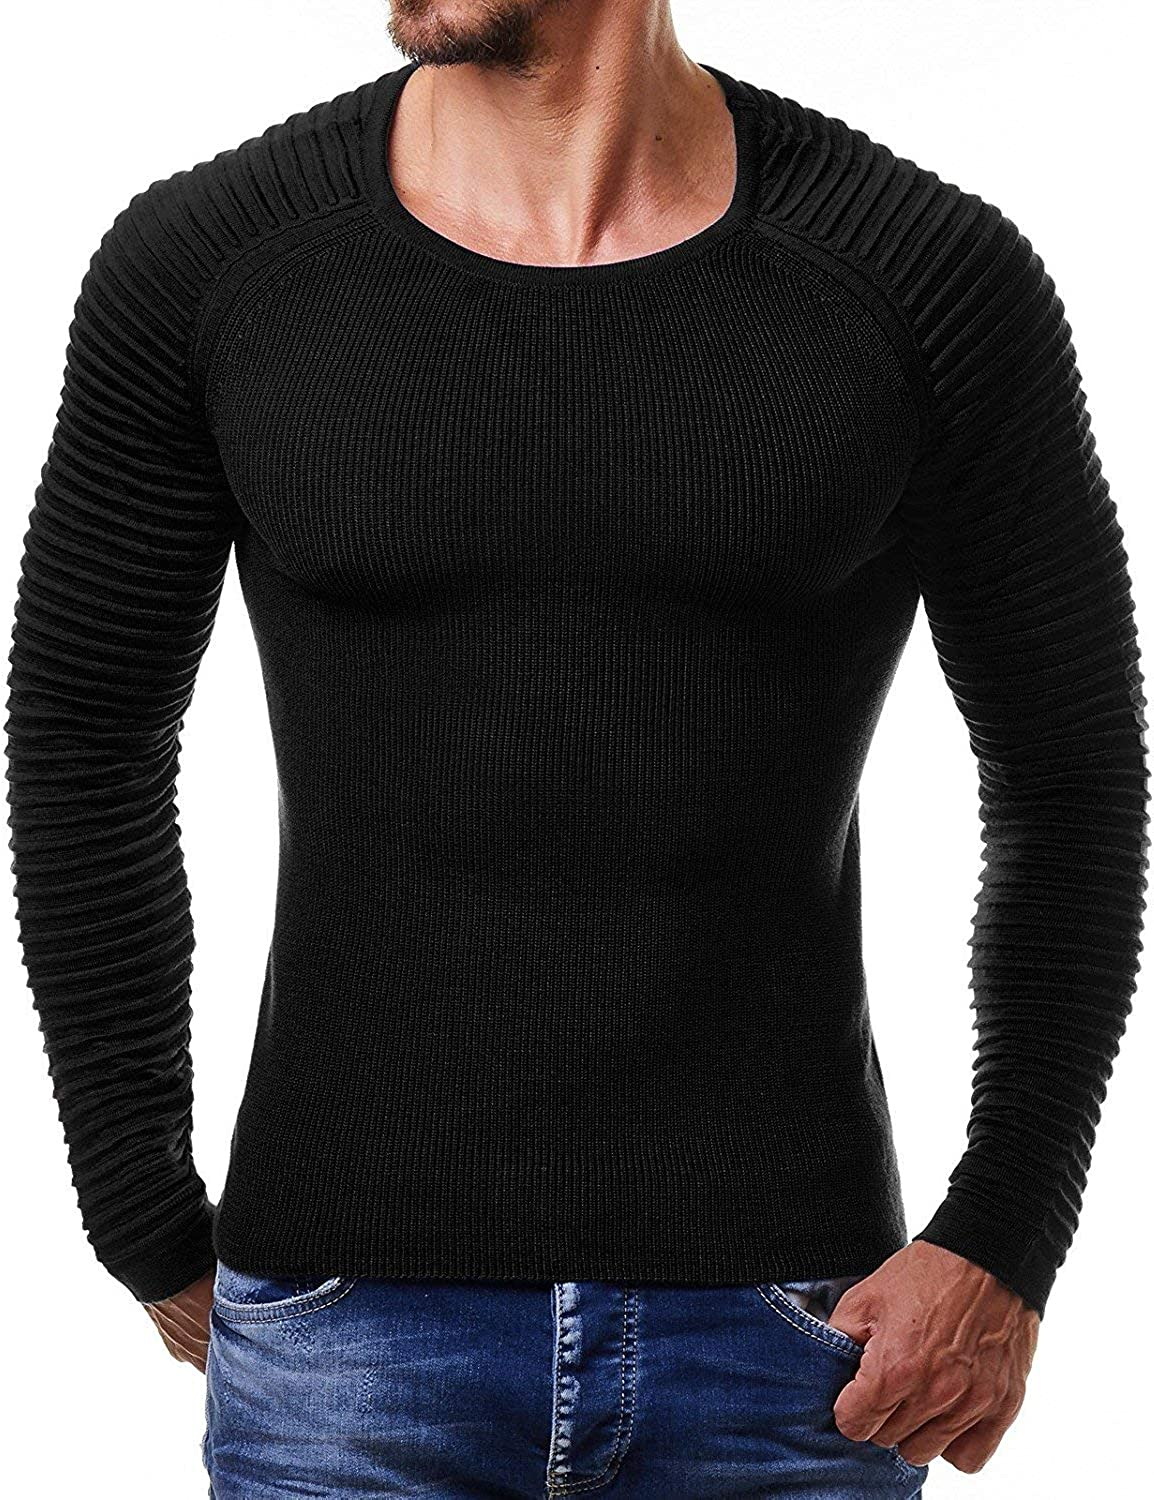 Mens New Cable Knit Jumper Sweater Pullover Long Sleeve Crew Neck Smart Top